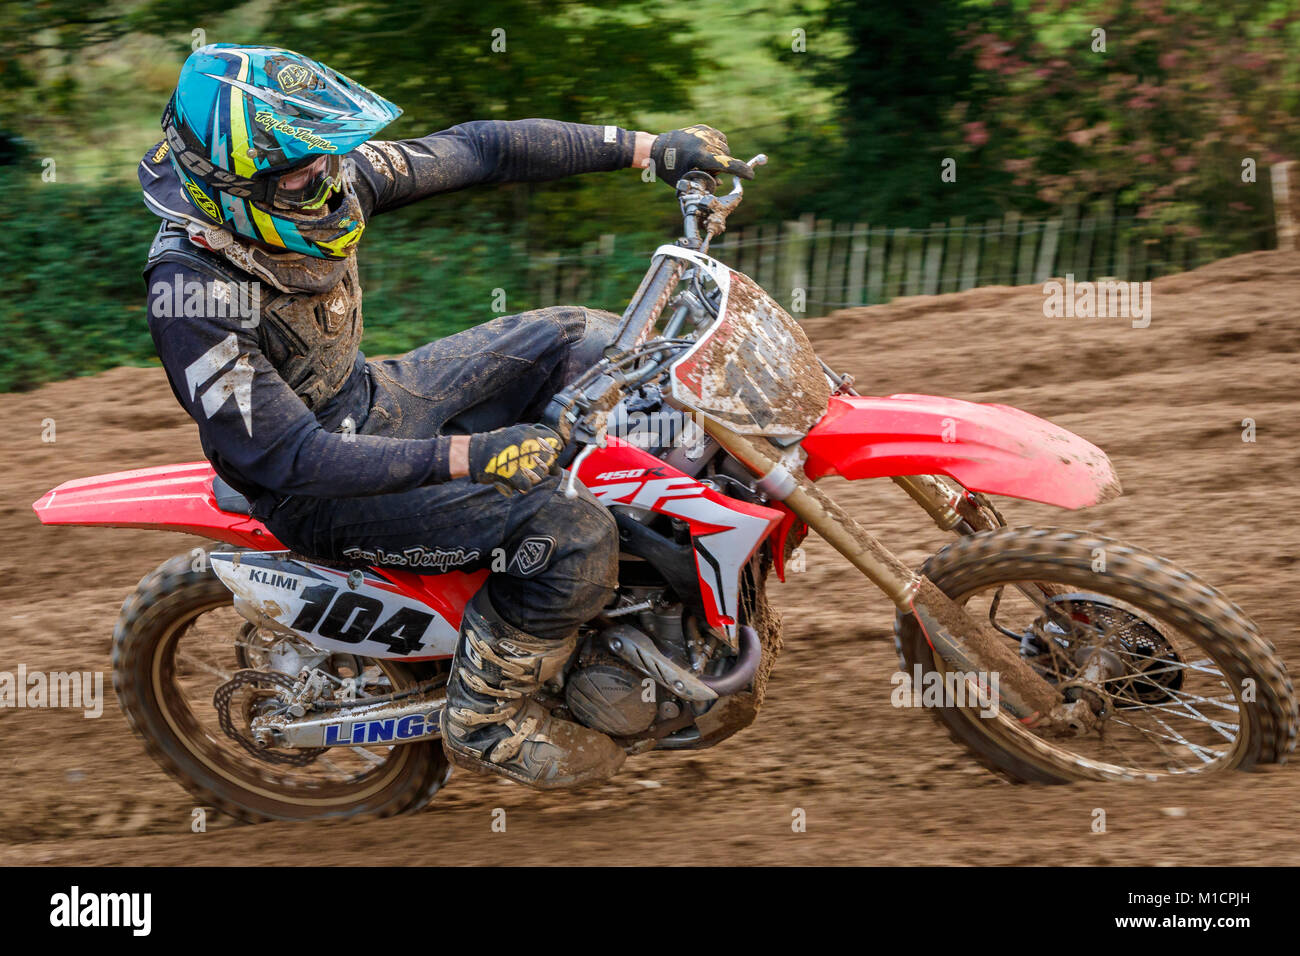 Jack Klimowicz on the Suzuki 250 at the NGR & ACU Eastern EVO Motocross Championships, Cadders Hill, Lyng, Norfolk, - Stock Image